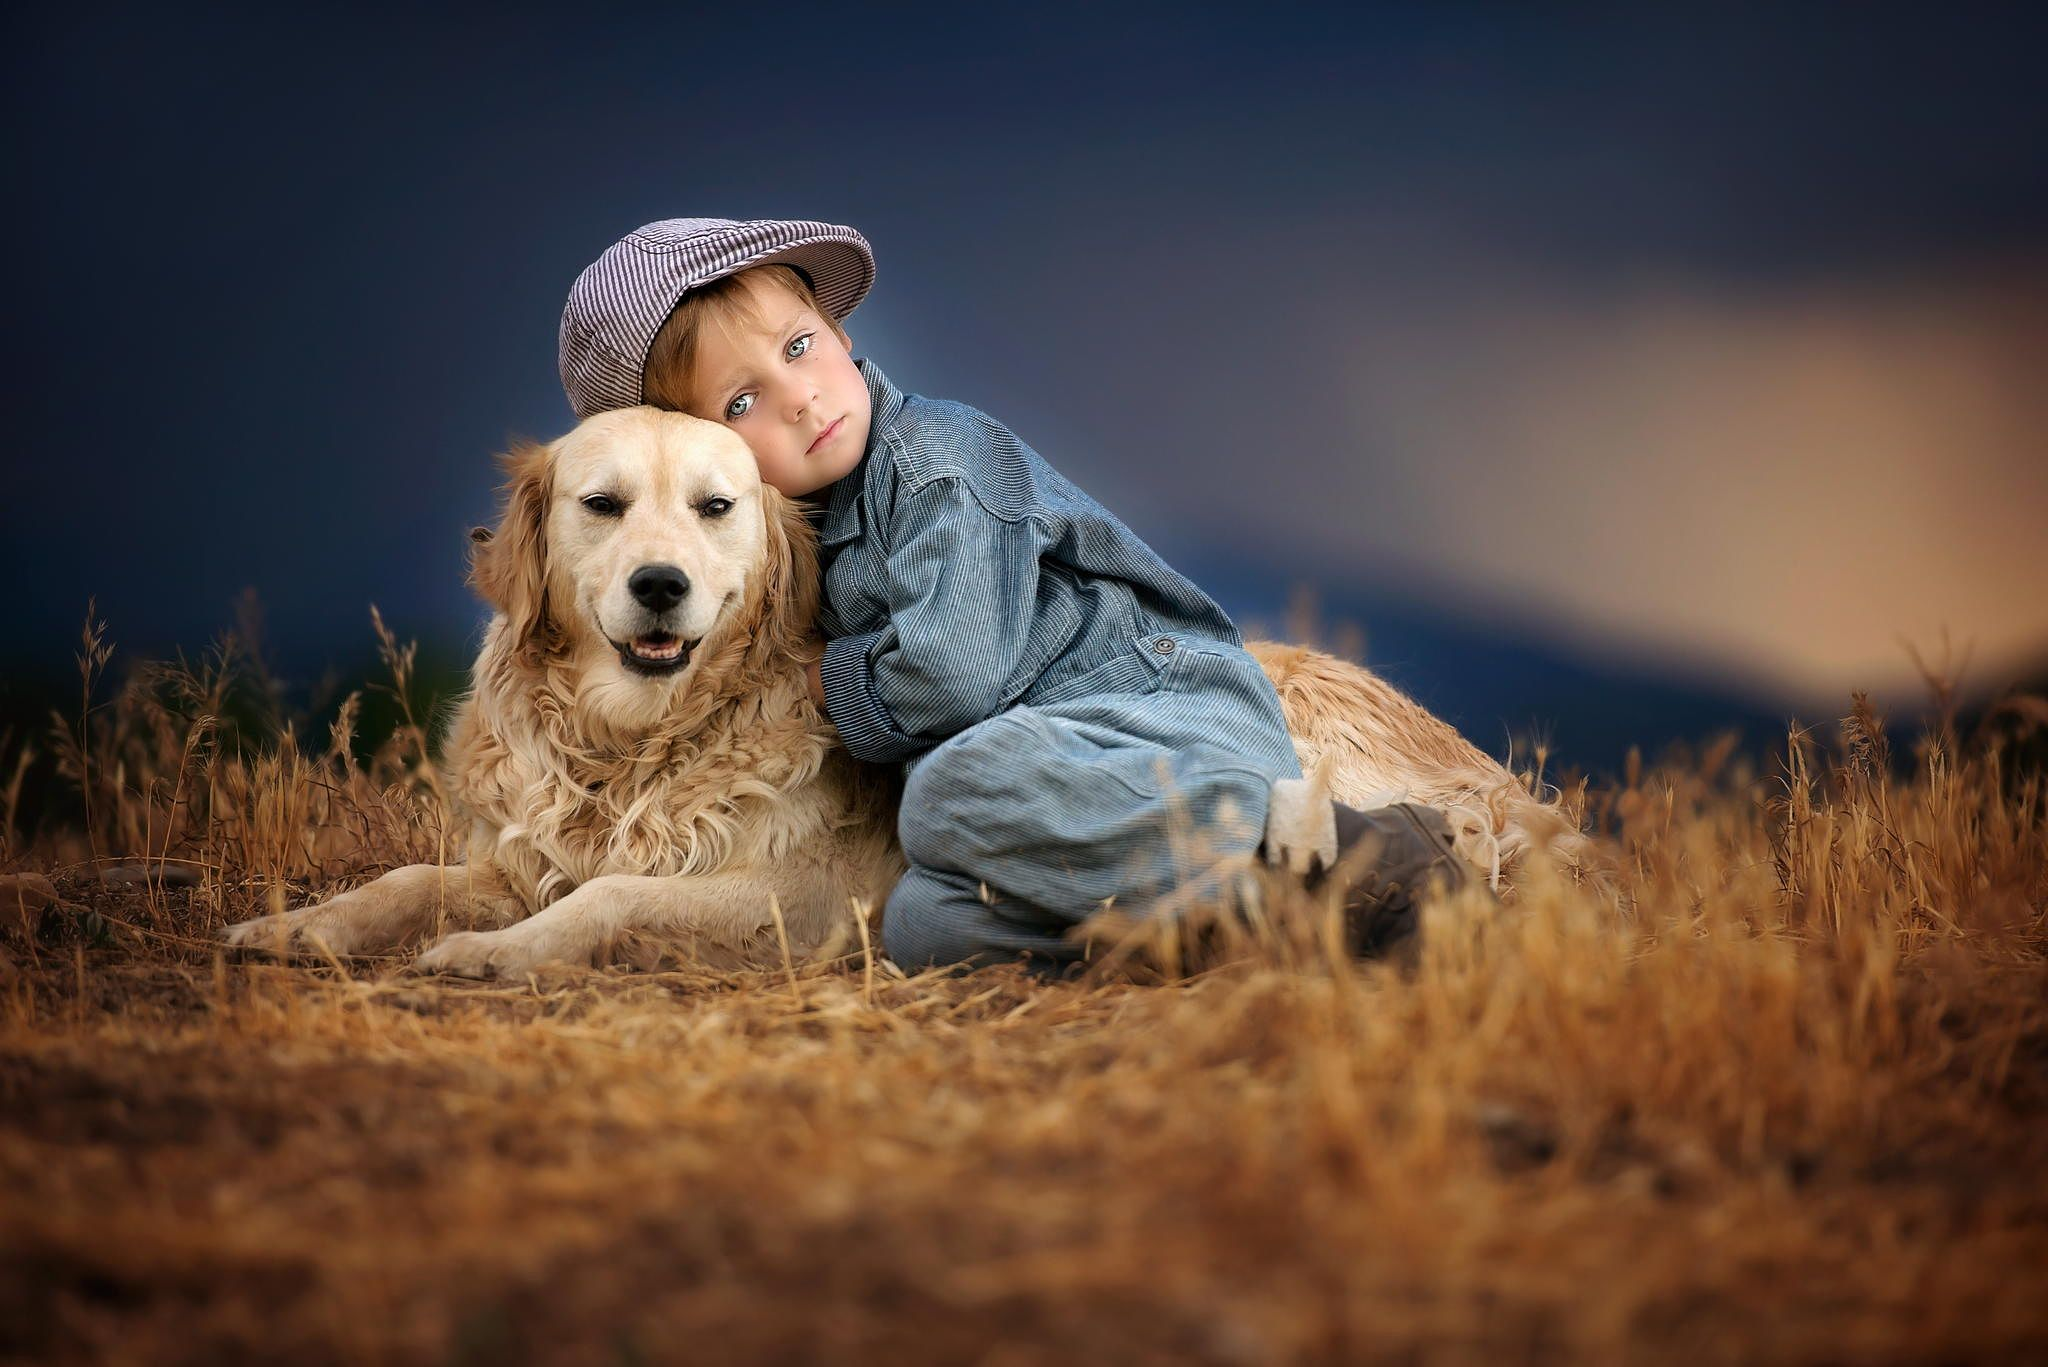 Best Friends by Amber Bauerle | Frosted Productions on 500px